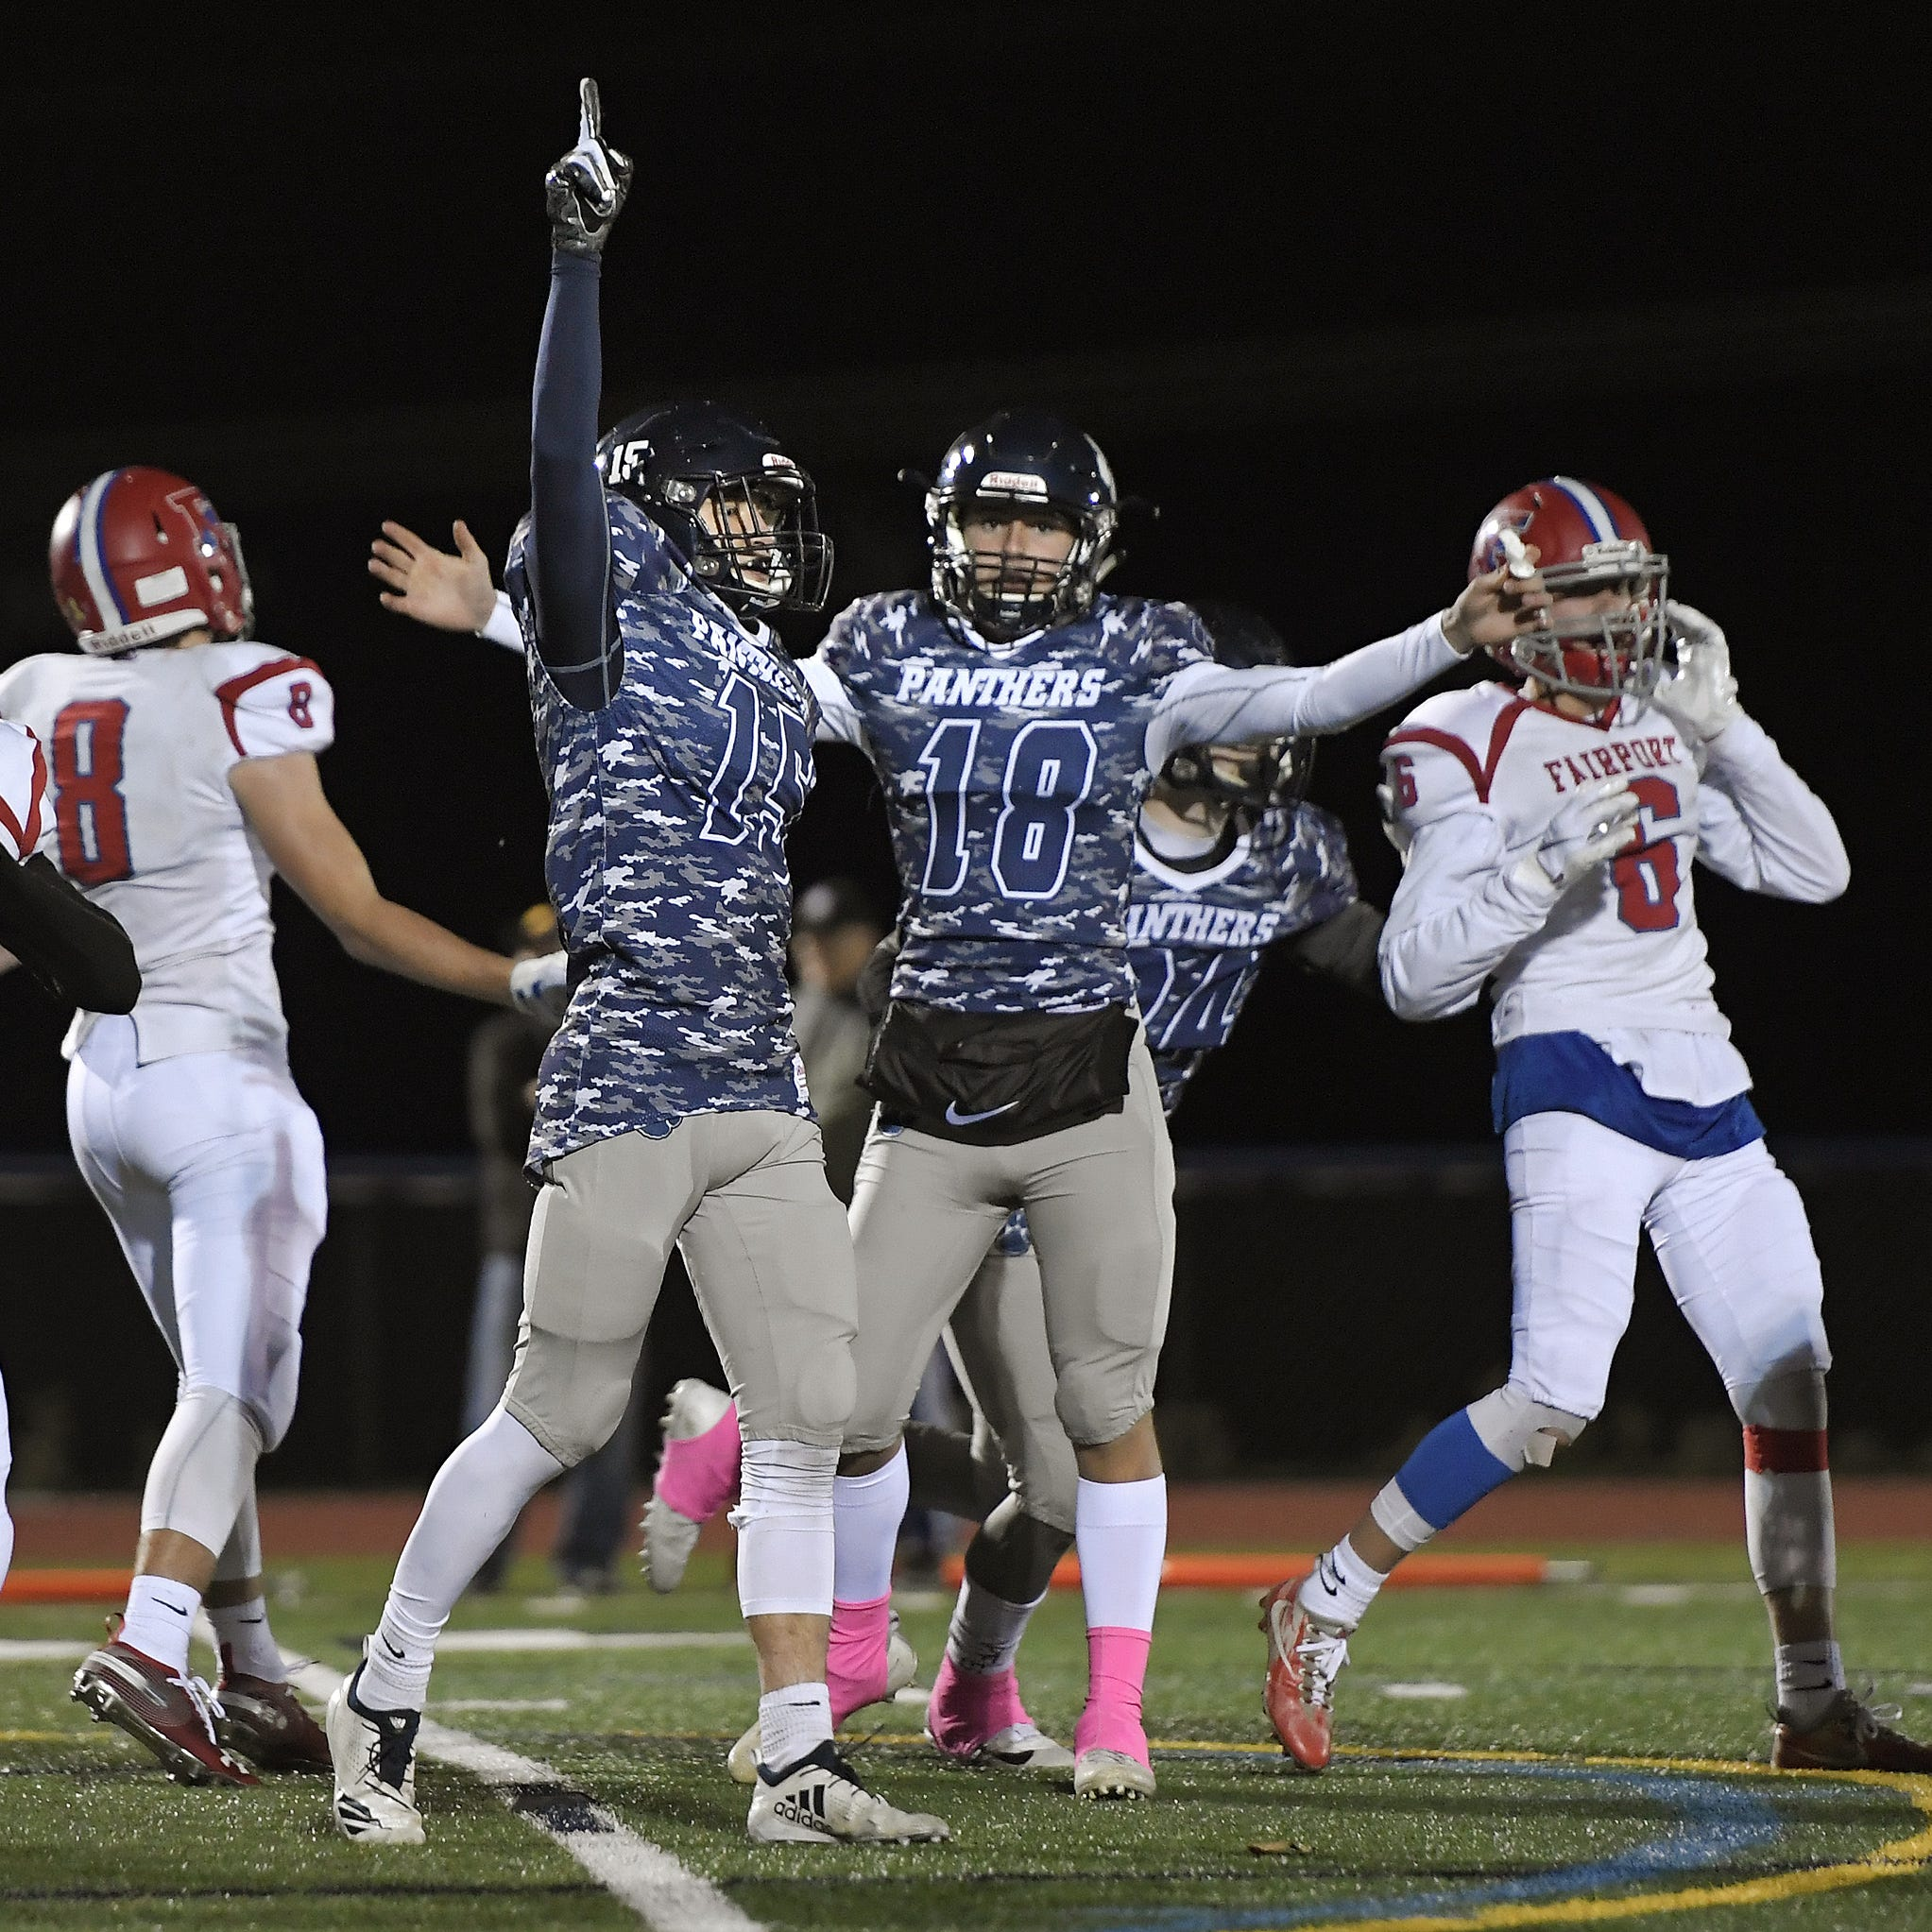 Pittsford pulls out Class AA quarterfinal over Fairport in overtime thriller